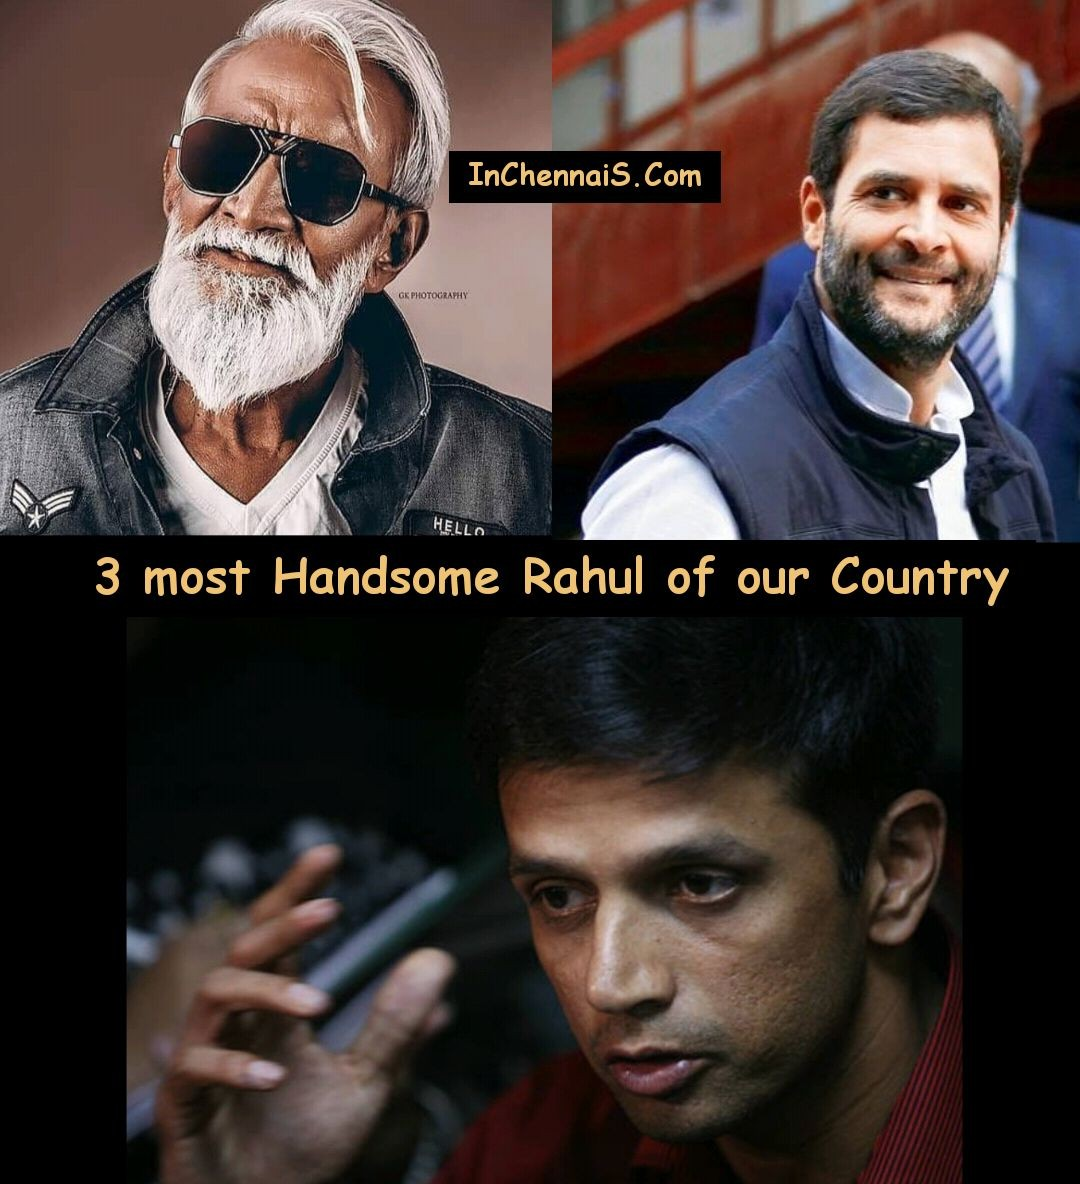 3 Most Handsome Rahul of India - Rahul Thatha Meme